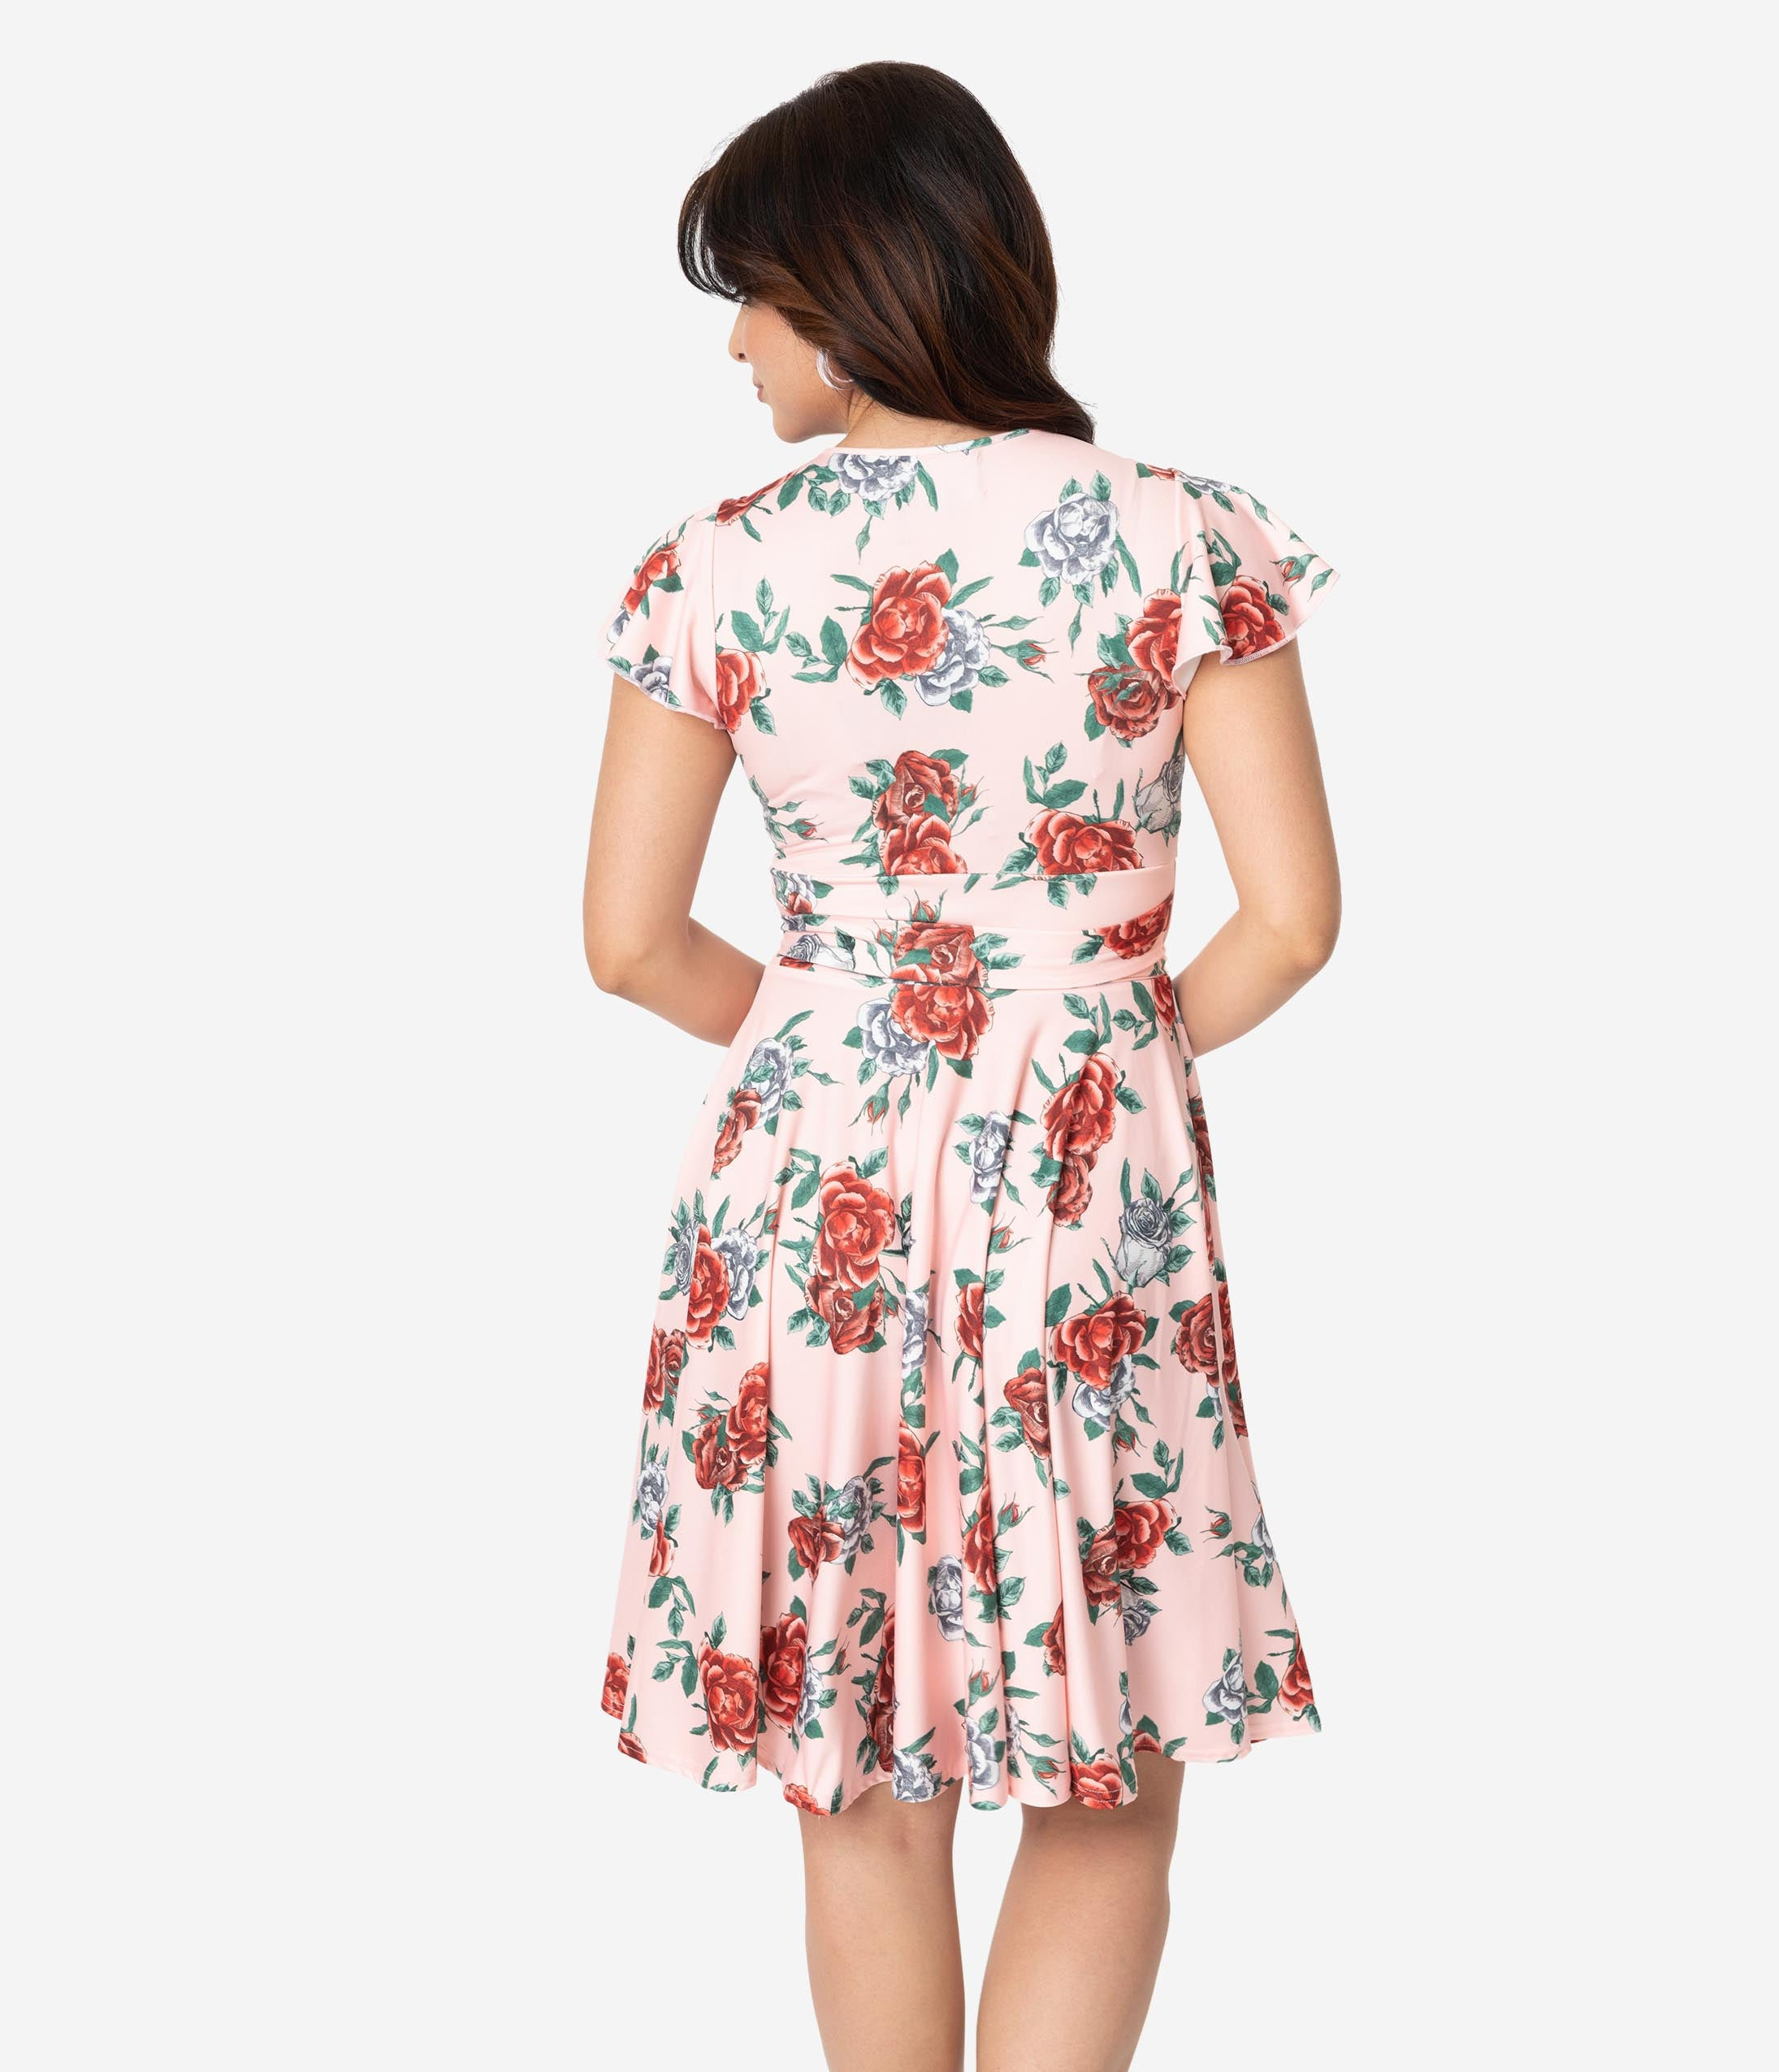 0cc919c1bcdd Hell Bunny 1950s Peach Pink   Red Floral Cap Sleeve Abigail Swing Dress